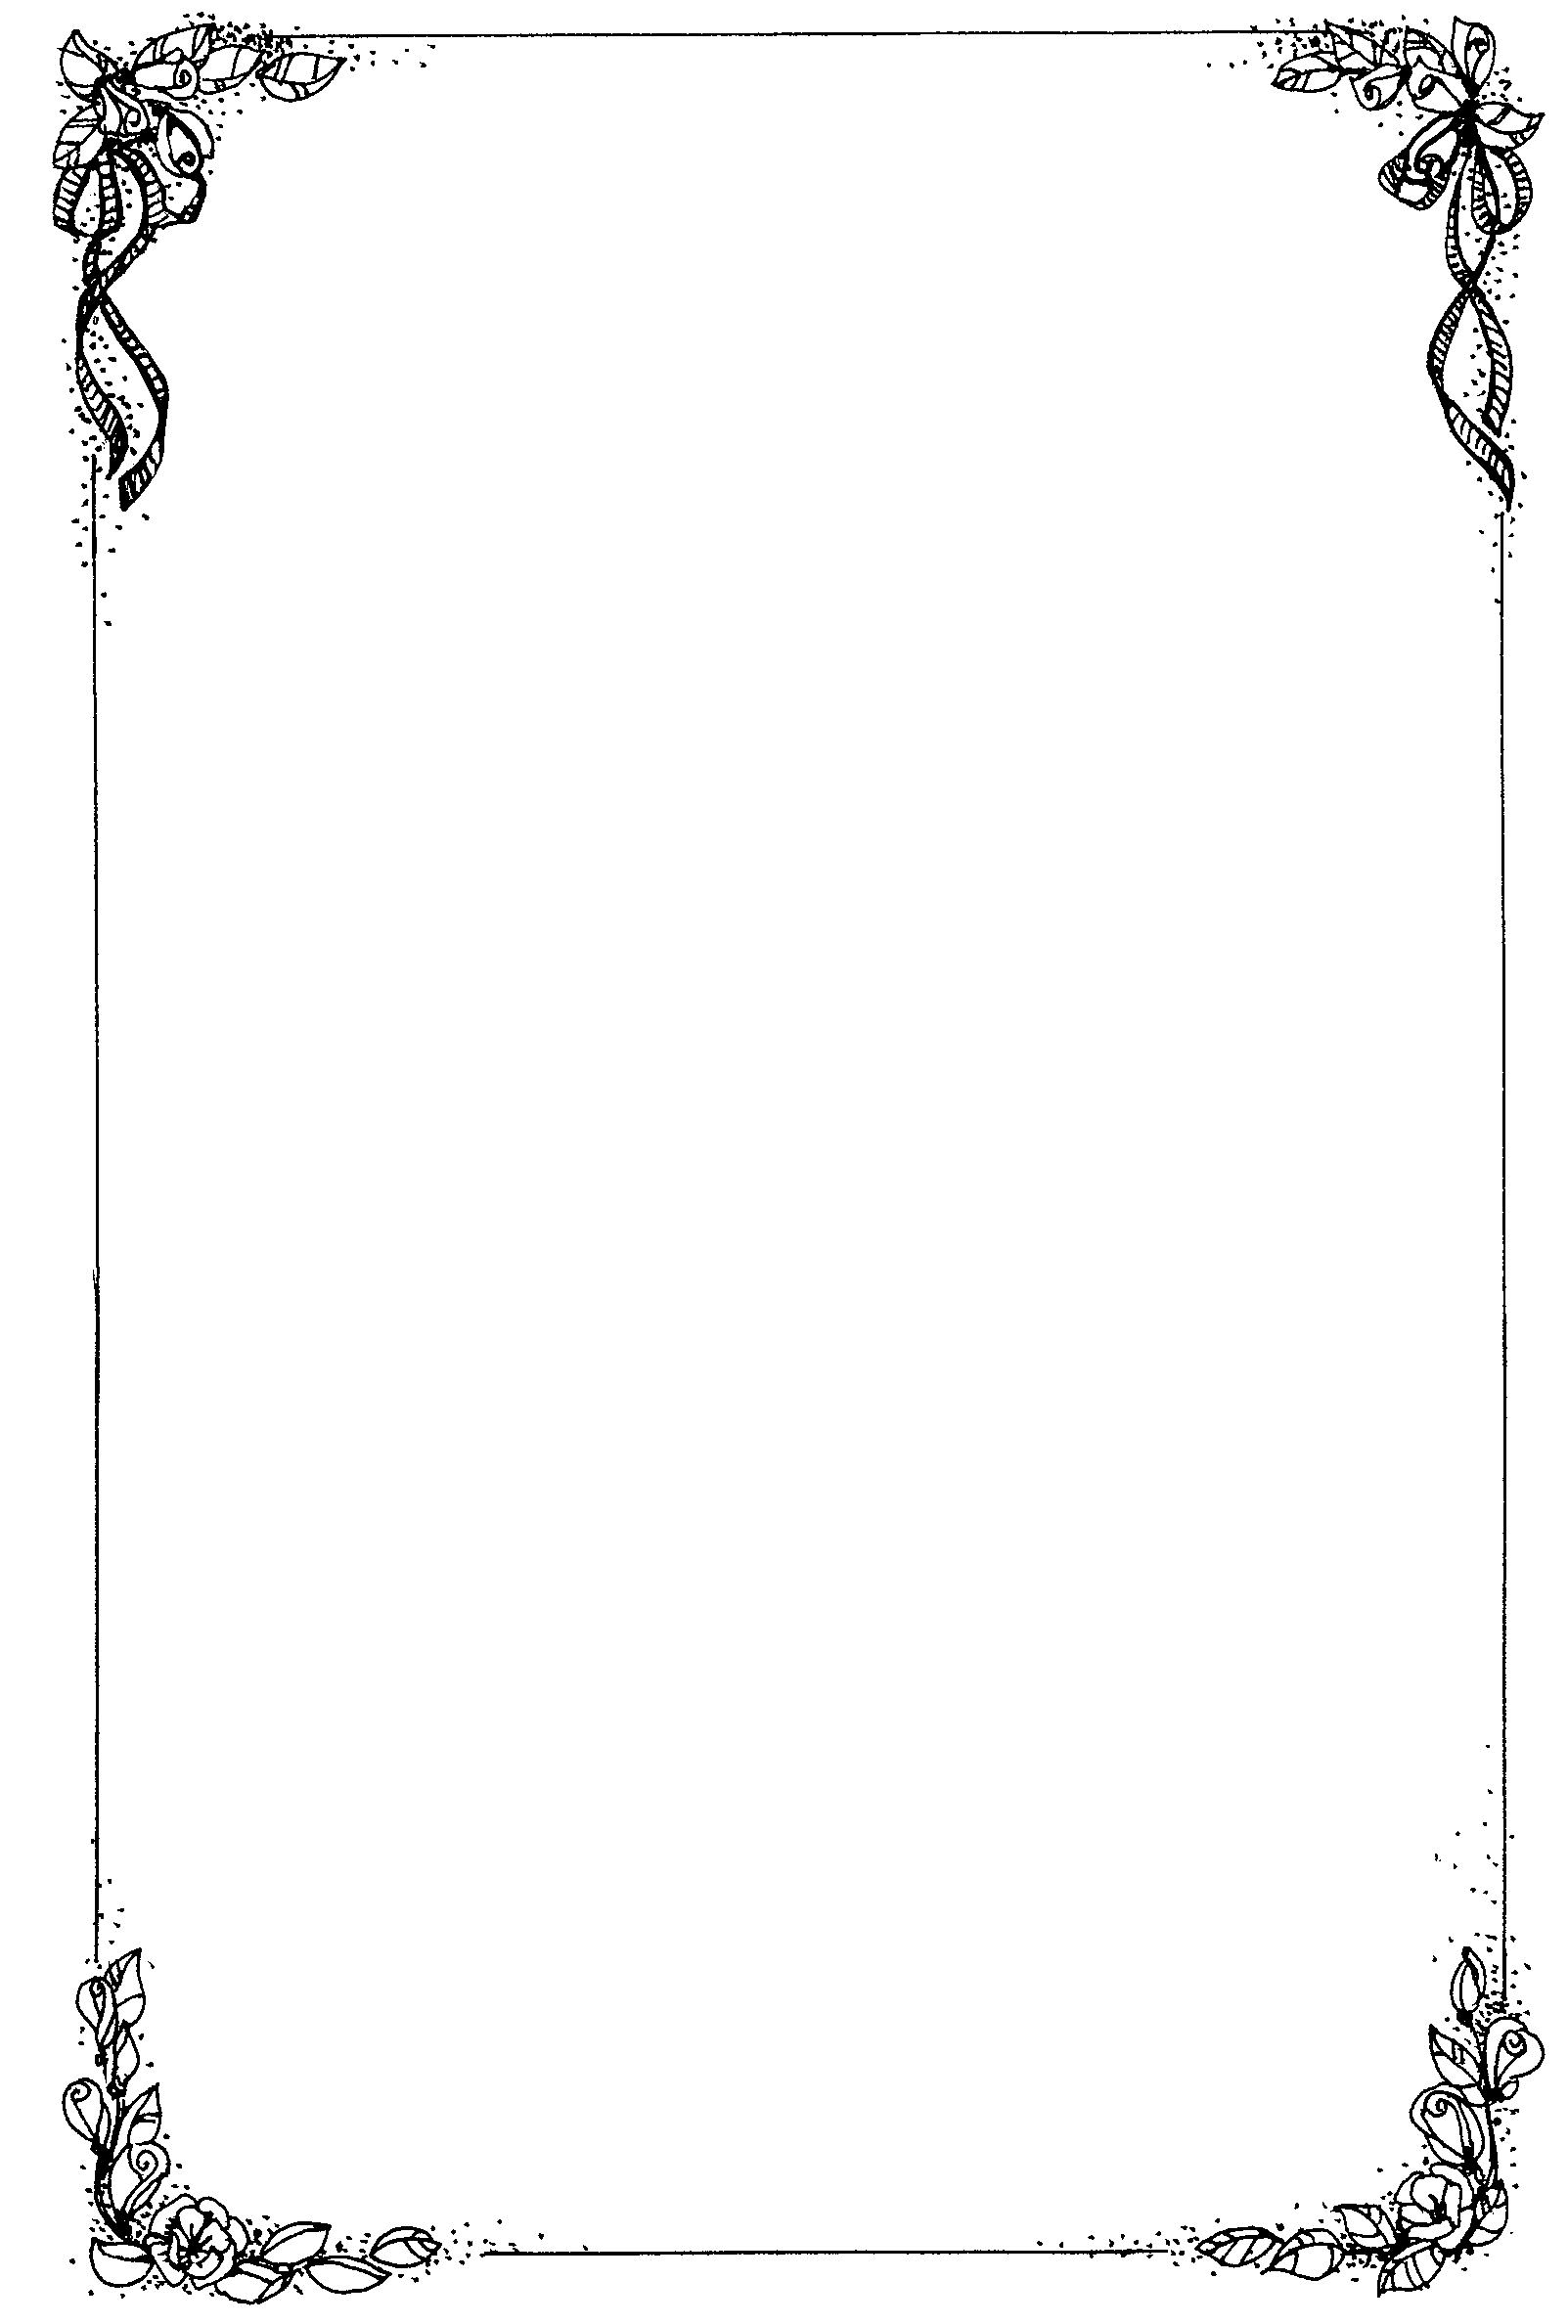 hight resolution of borders christmas border clipart black and white free